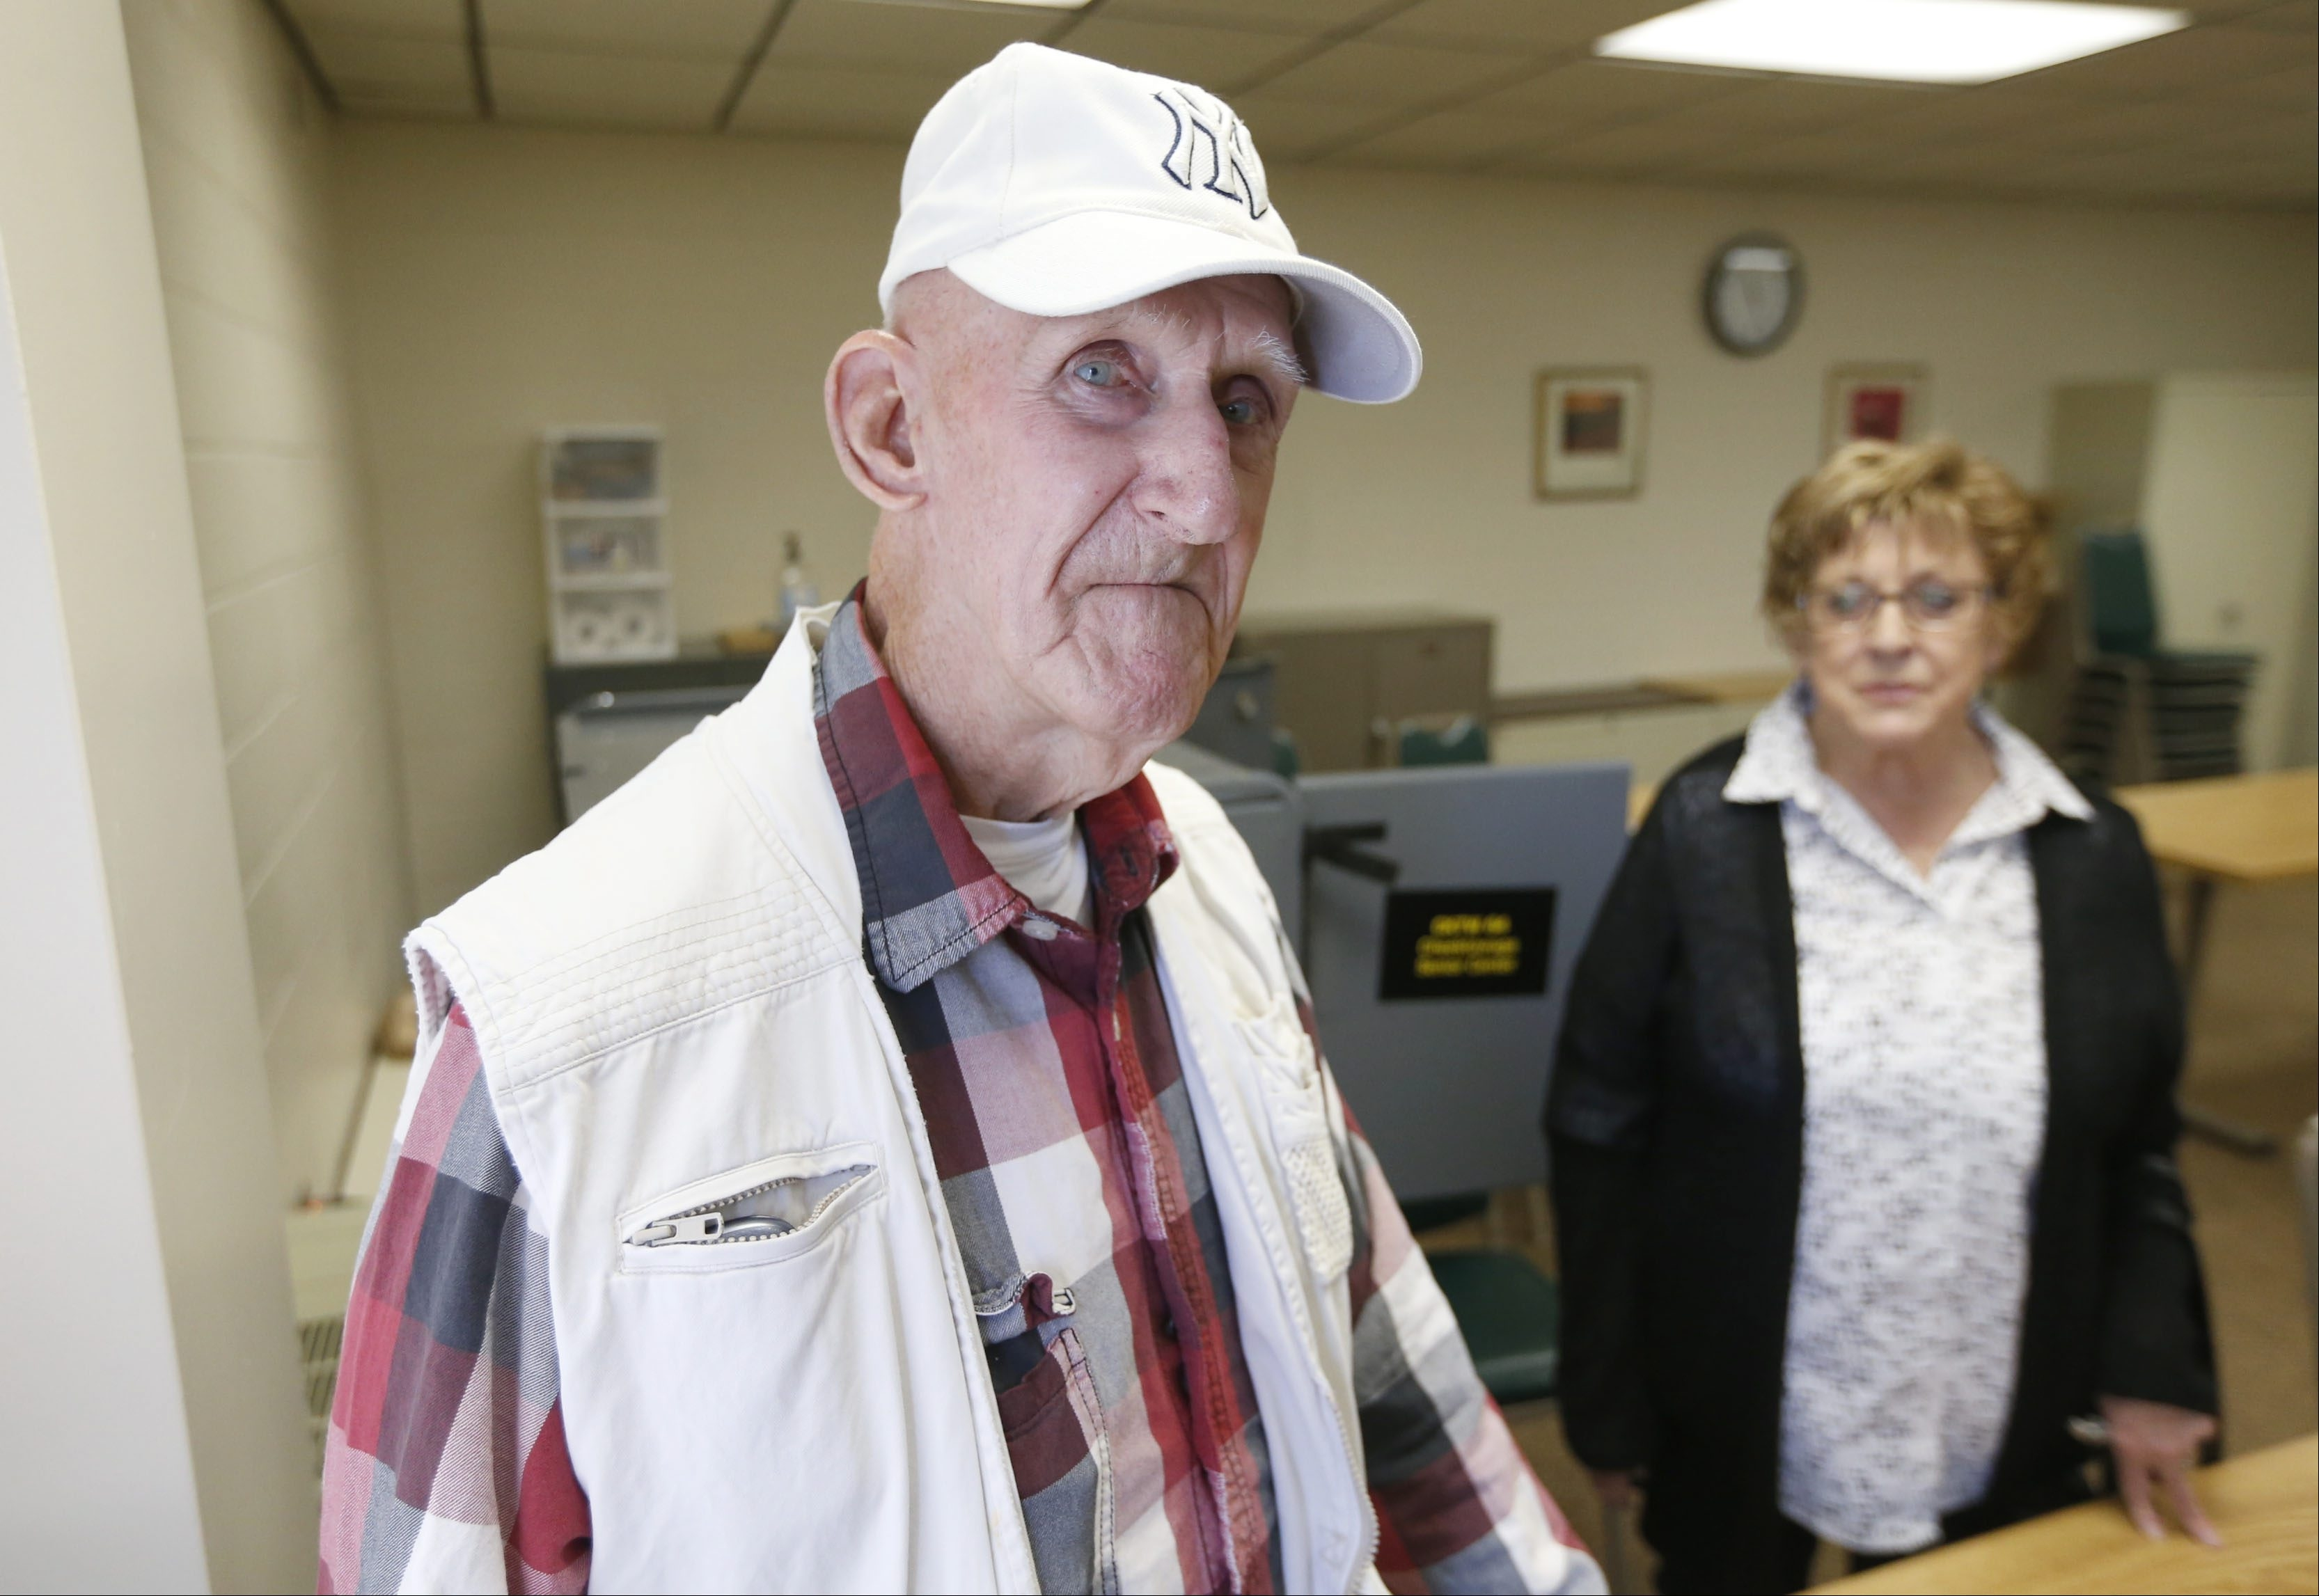 Republican Donald Frank voted for Texas Sen. Ted Cruz on Tuesday at the Cheektowaga Senior Center.